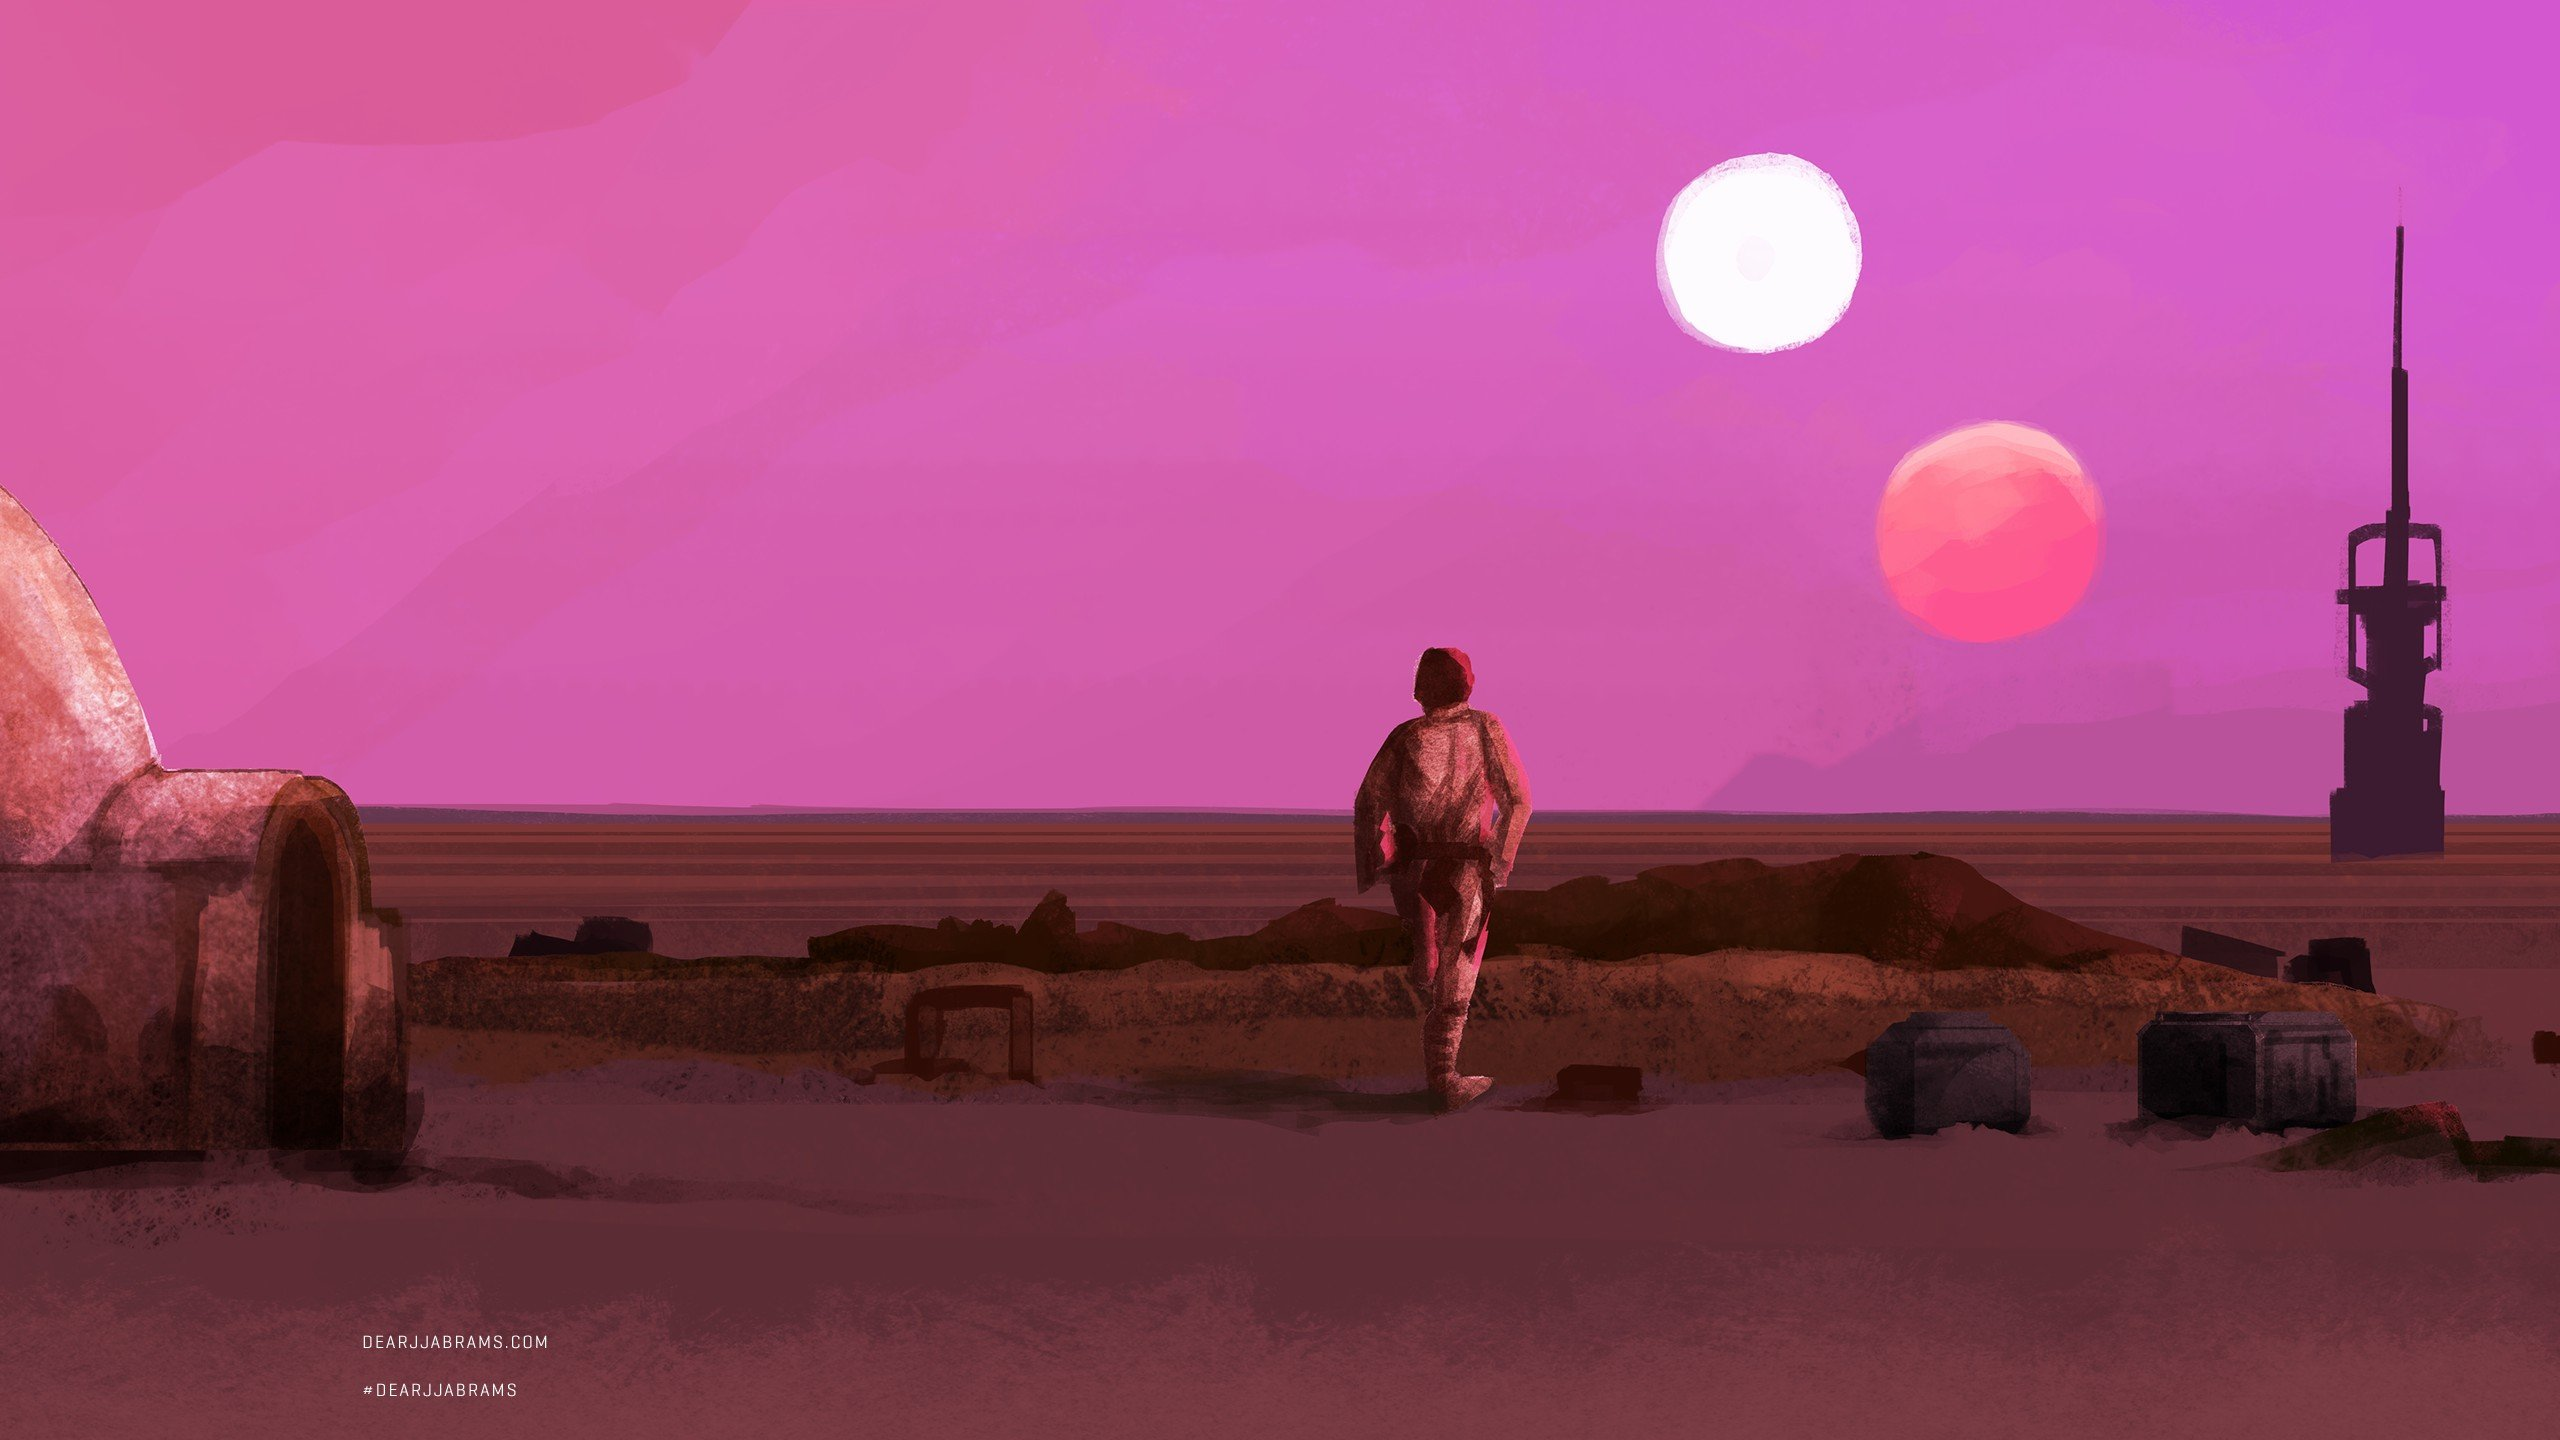 Free Download Star Wars Animated Great Again Background Details Wallpapers Hd 2560x1440 For Your Desktop Mobile Tablet Explore 50 Animated Star Wars Wallpapers Animated Stars Wallpaper Free Star Wars